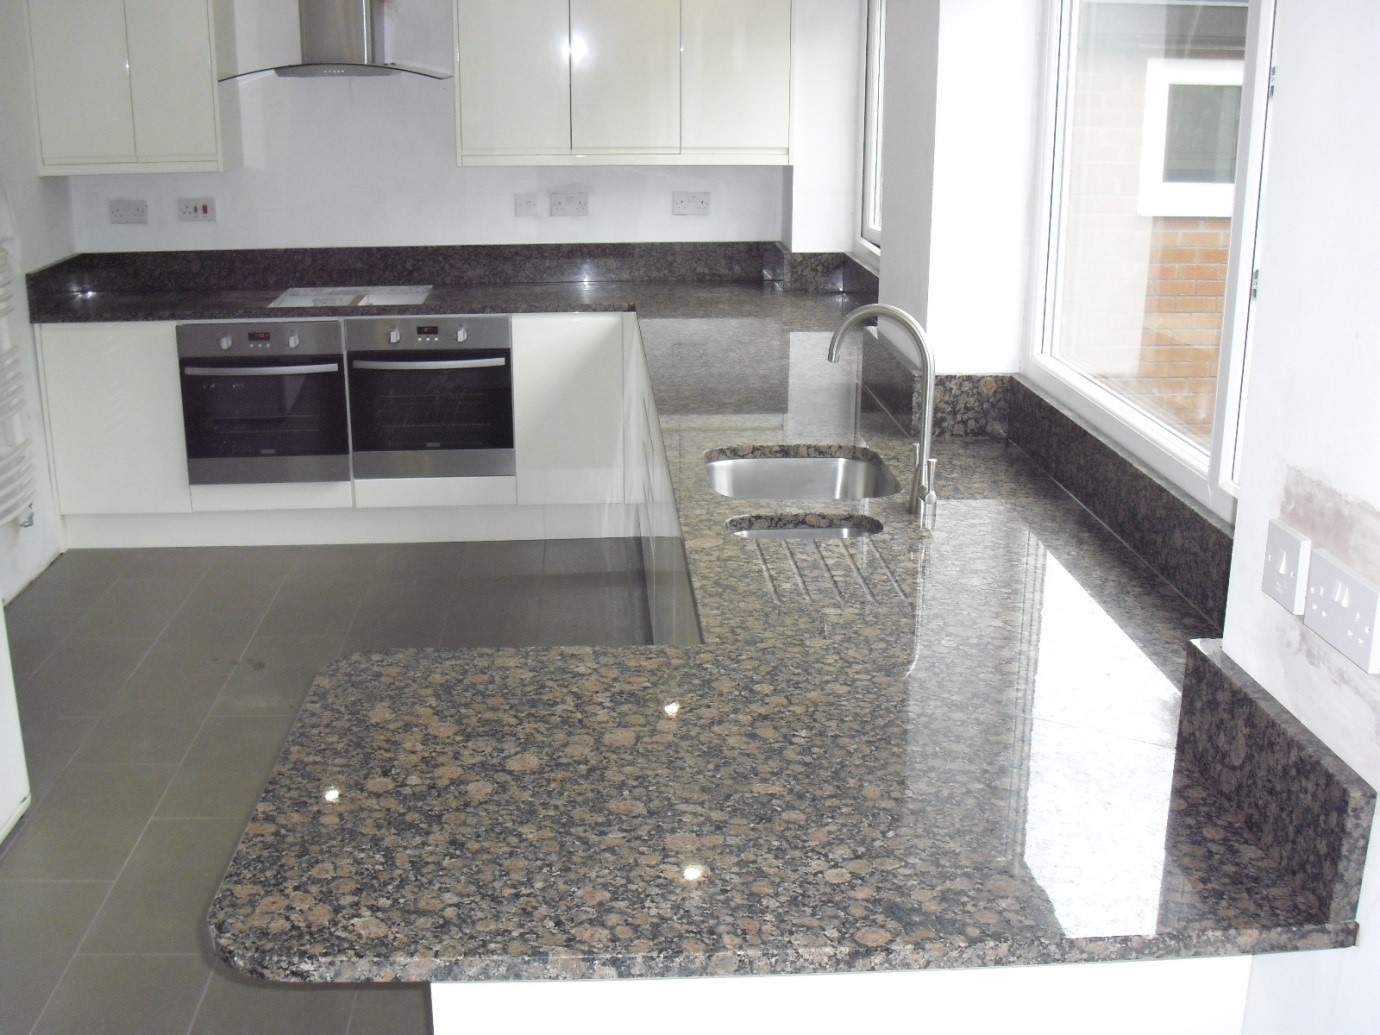 ... granite and quartz worktop supplier - Cheshire Granite Worktops